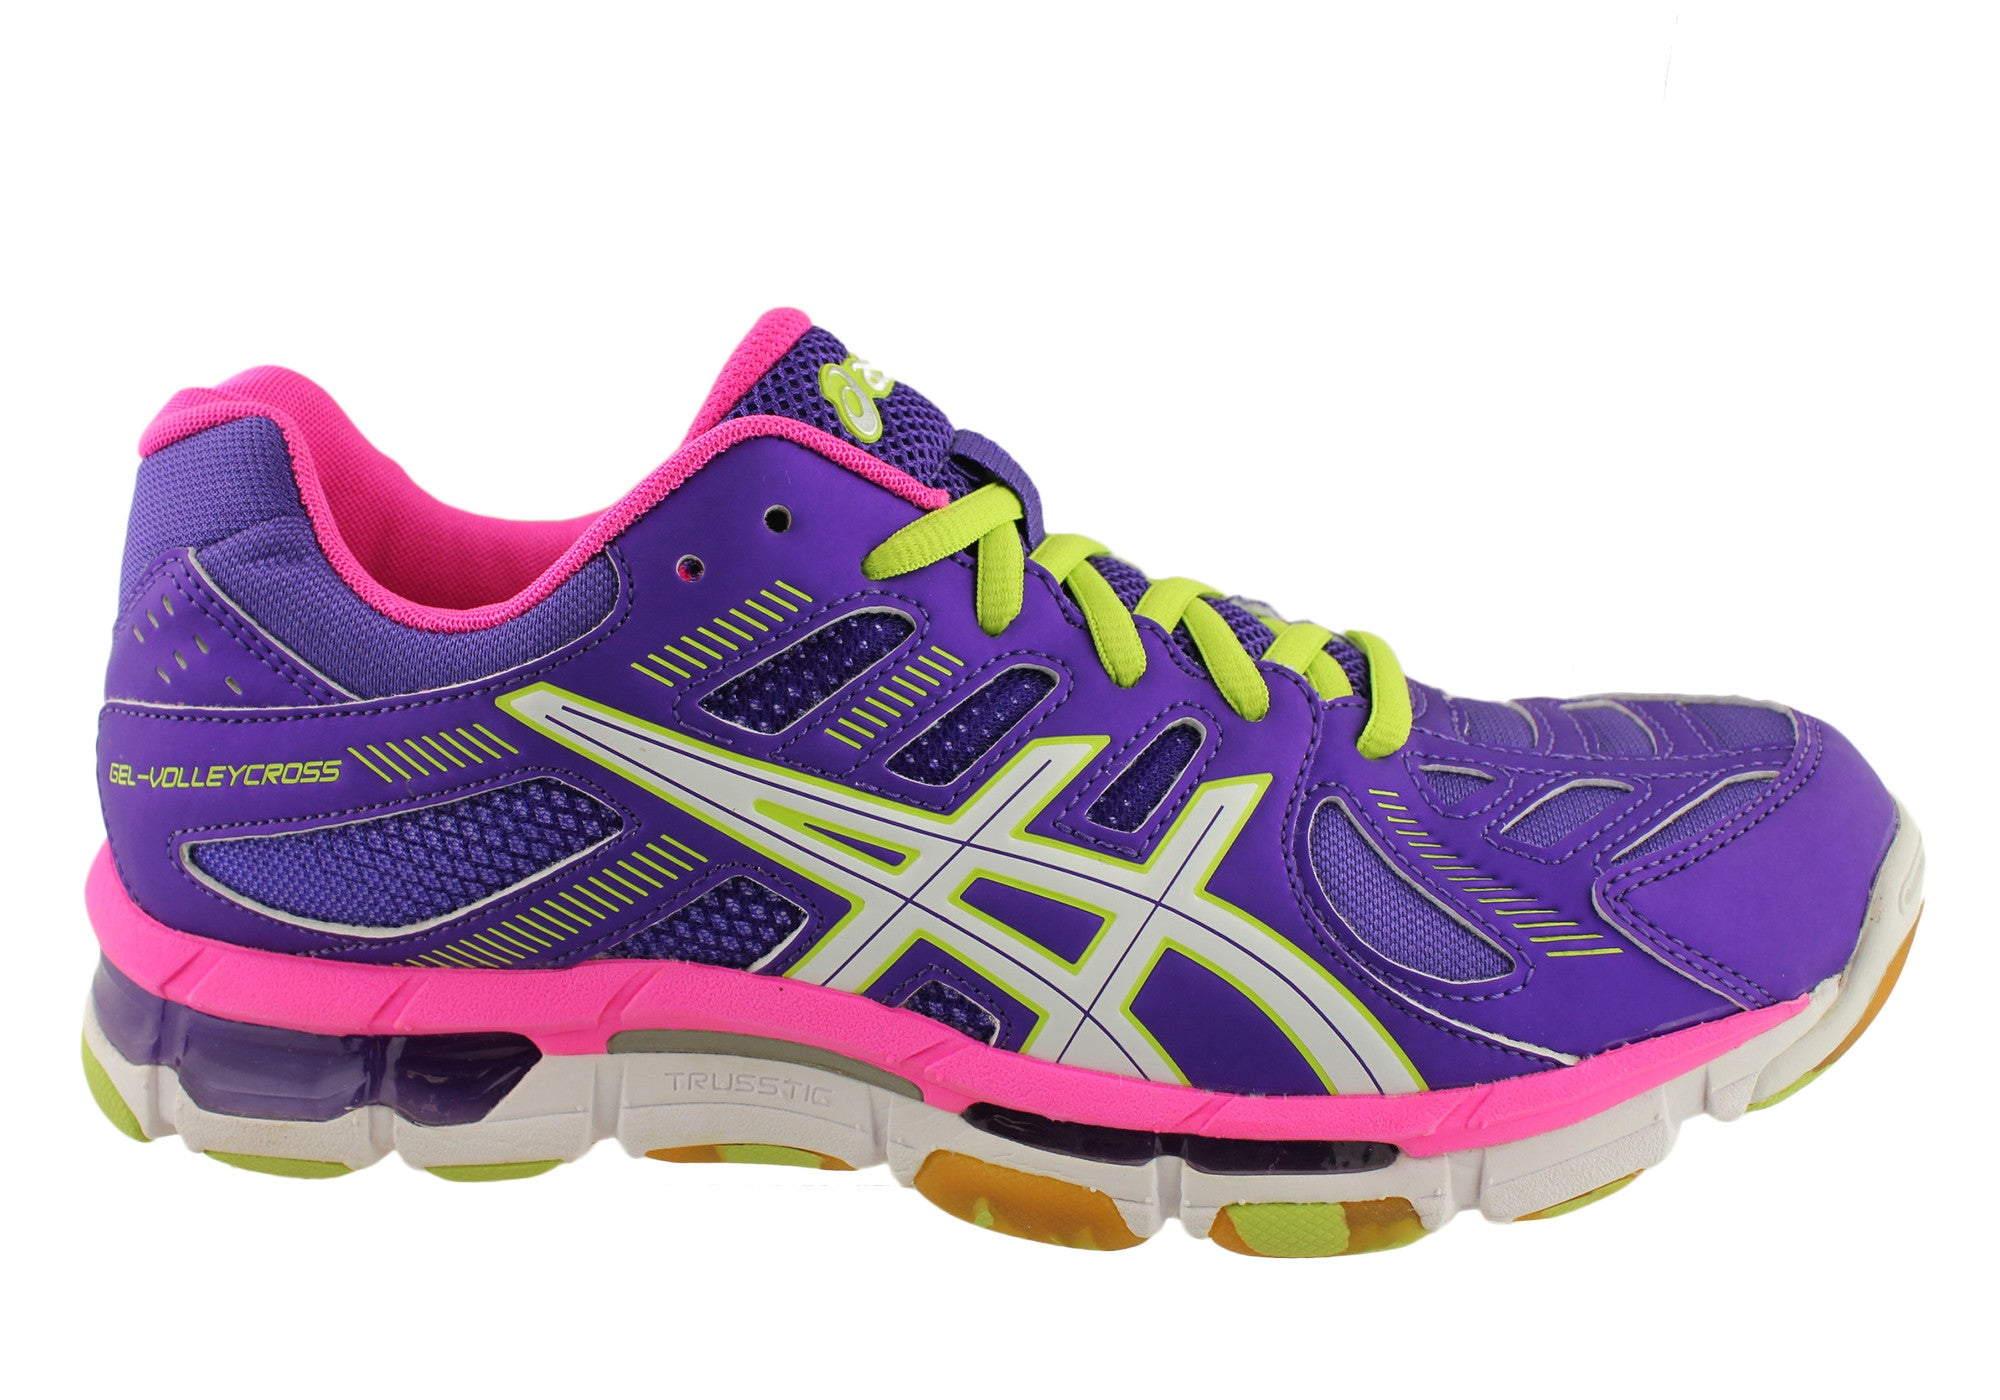 Details about NEW ASICS GEL VOLLEYCROSS REVOLUTION WOMENS VOLLEYBALLNETBALL SHOES